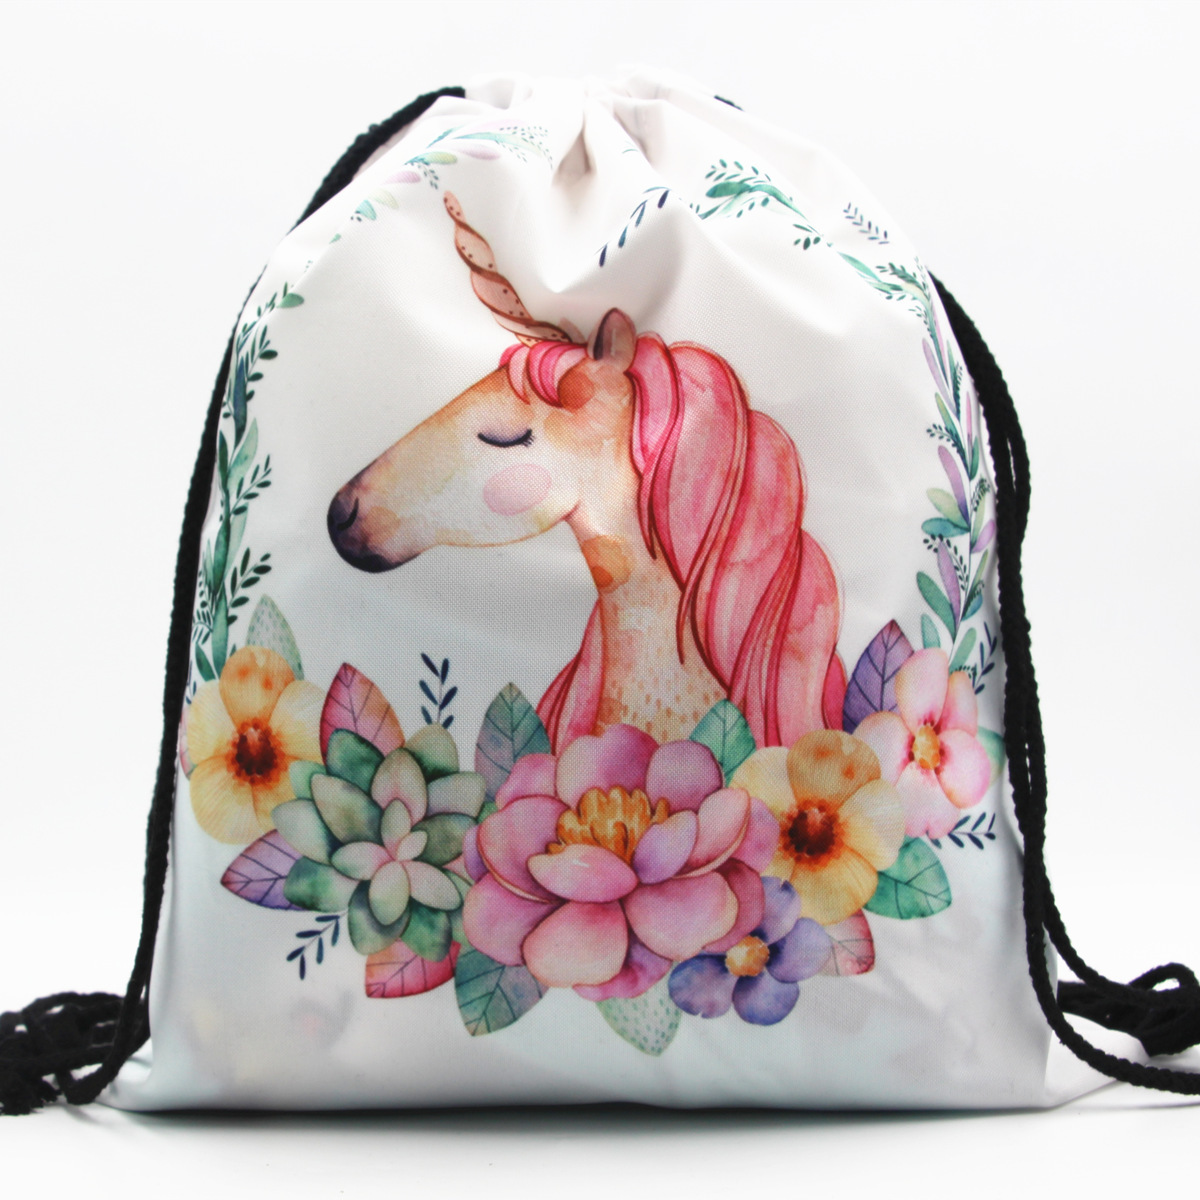 25 Color Unicorn 3D Printing Drawstring Backpack Newest Vintage College Students School Bagpack Girls Mochila Sack Bags